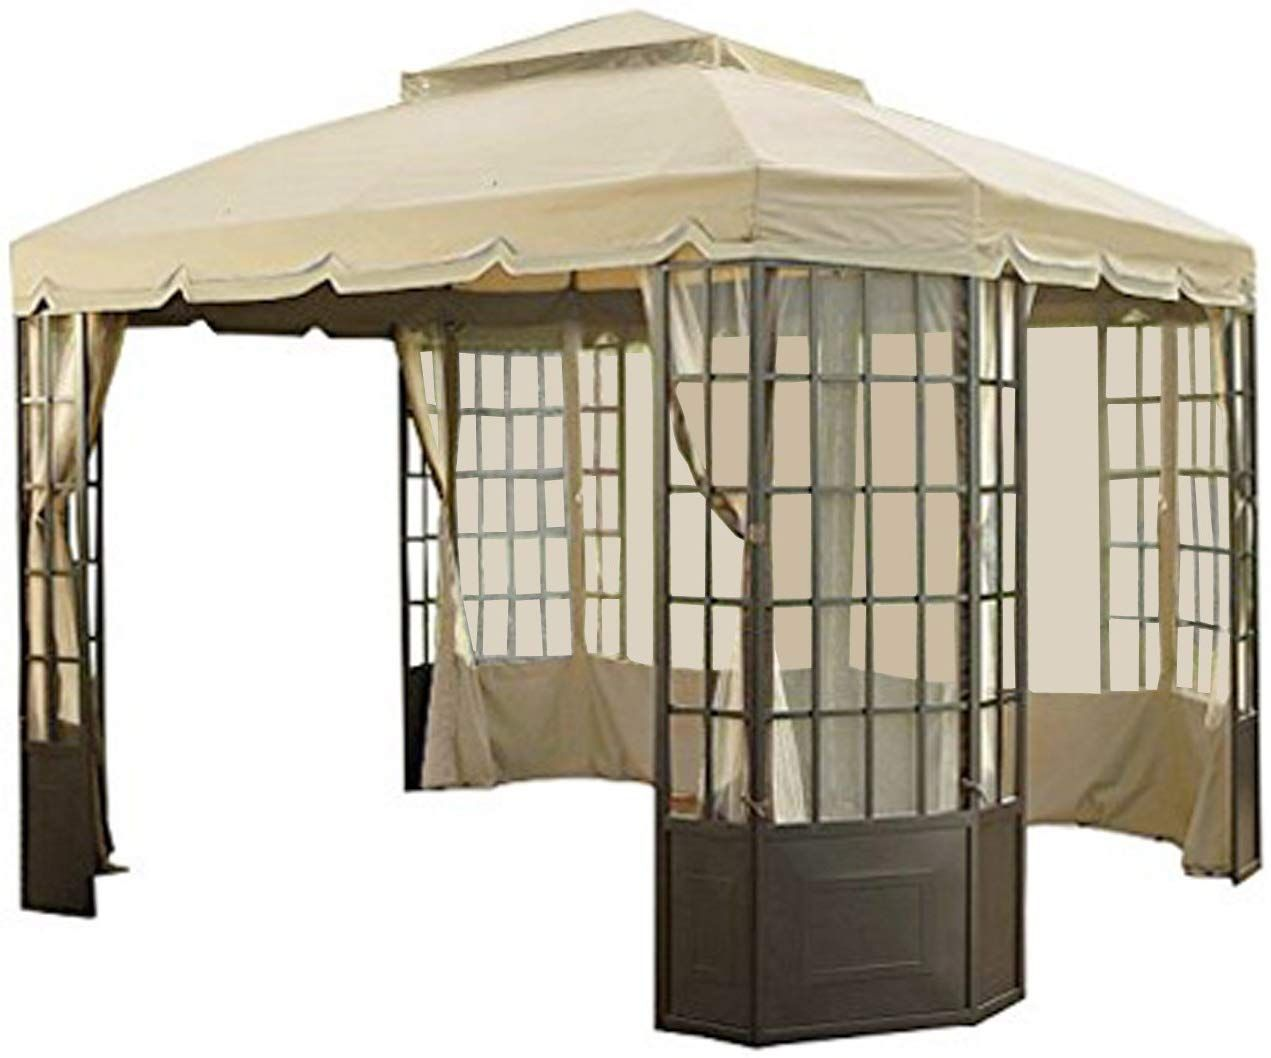 Garden Winds Replacement Canopy Set For The Sears Bay Window Gazebo With Ultra Stitch And Dura Pockets Click Image For Gazebo Replacement Canopy Bay Window